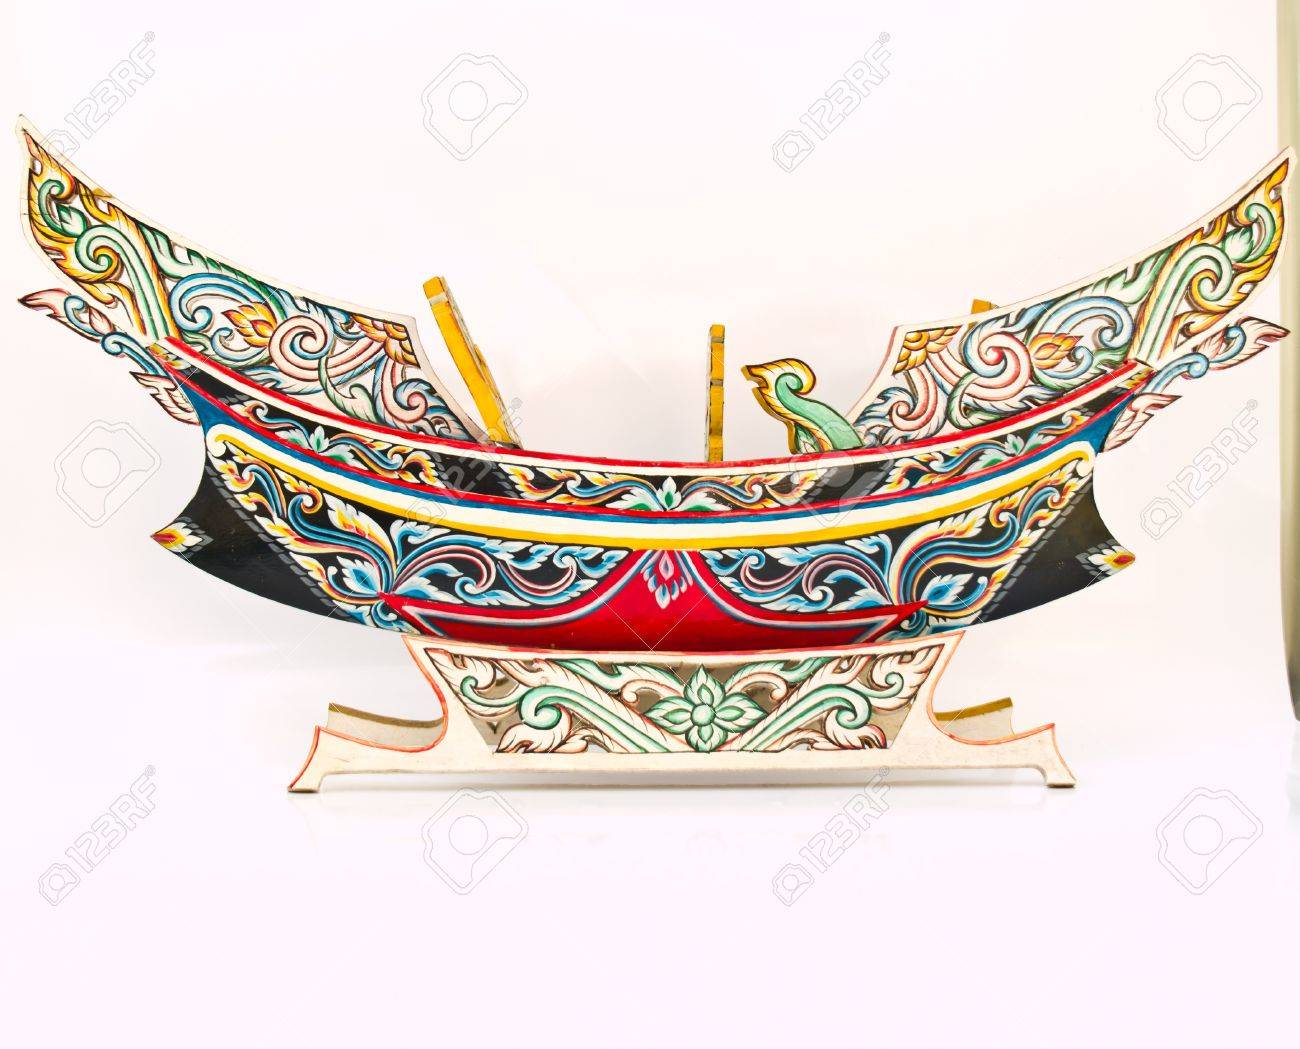 A Thai Southern-most traditional fishing boat, Kolek, Model Stock Photo - 17528992